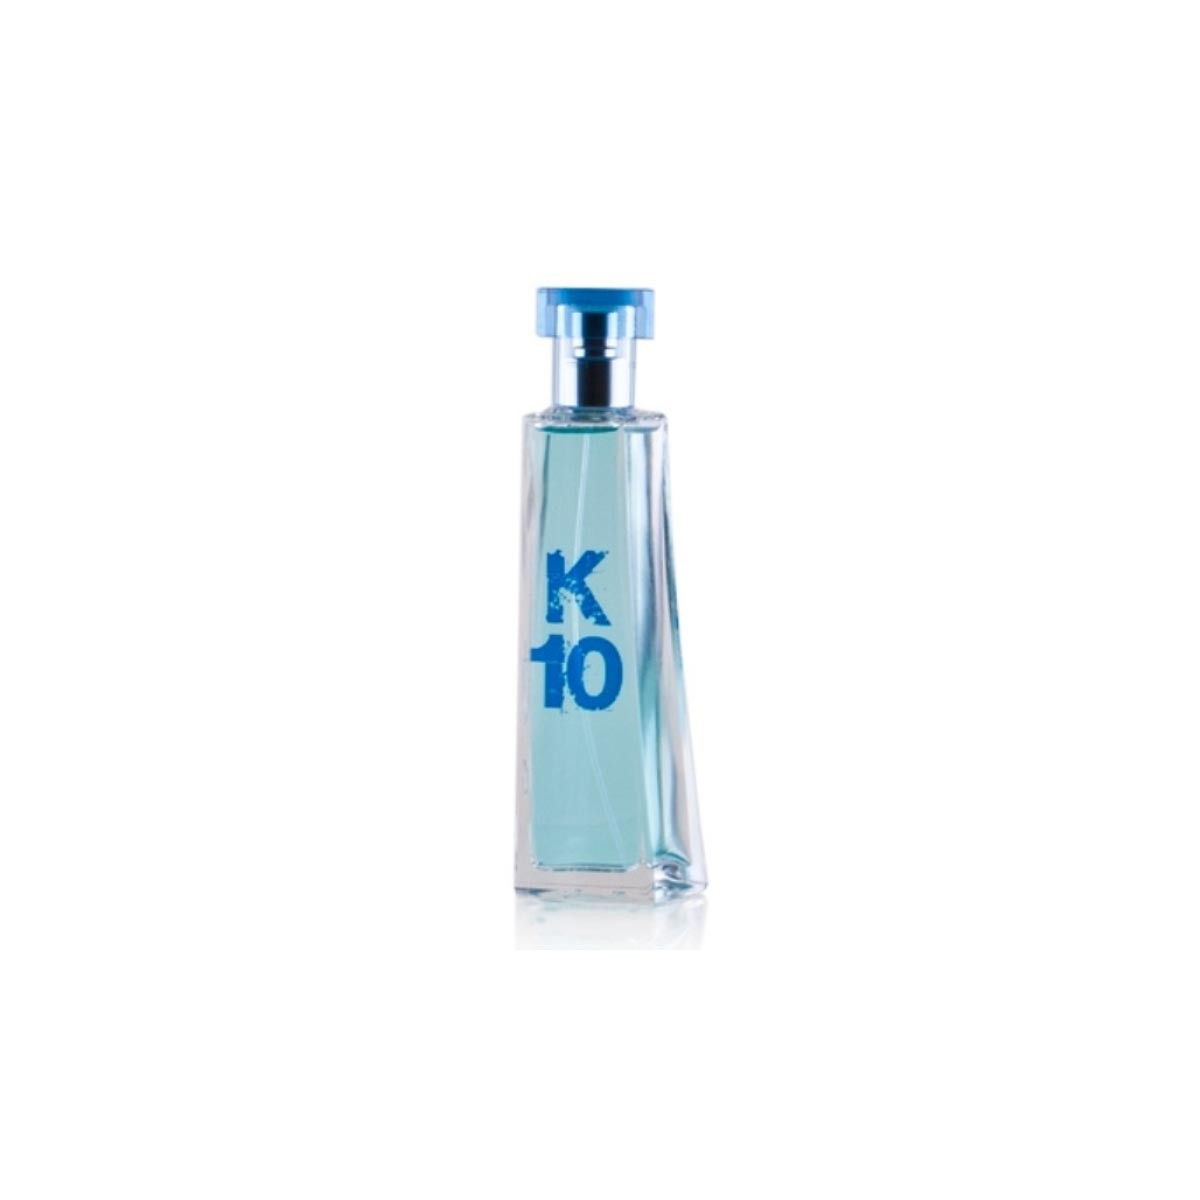 Consumo K10 Men Eau De Toilette 100 ml